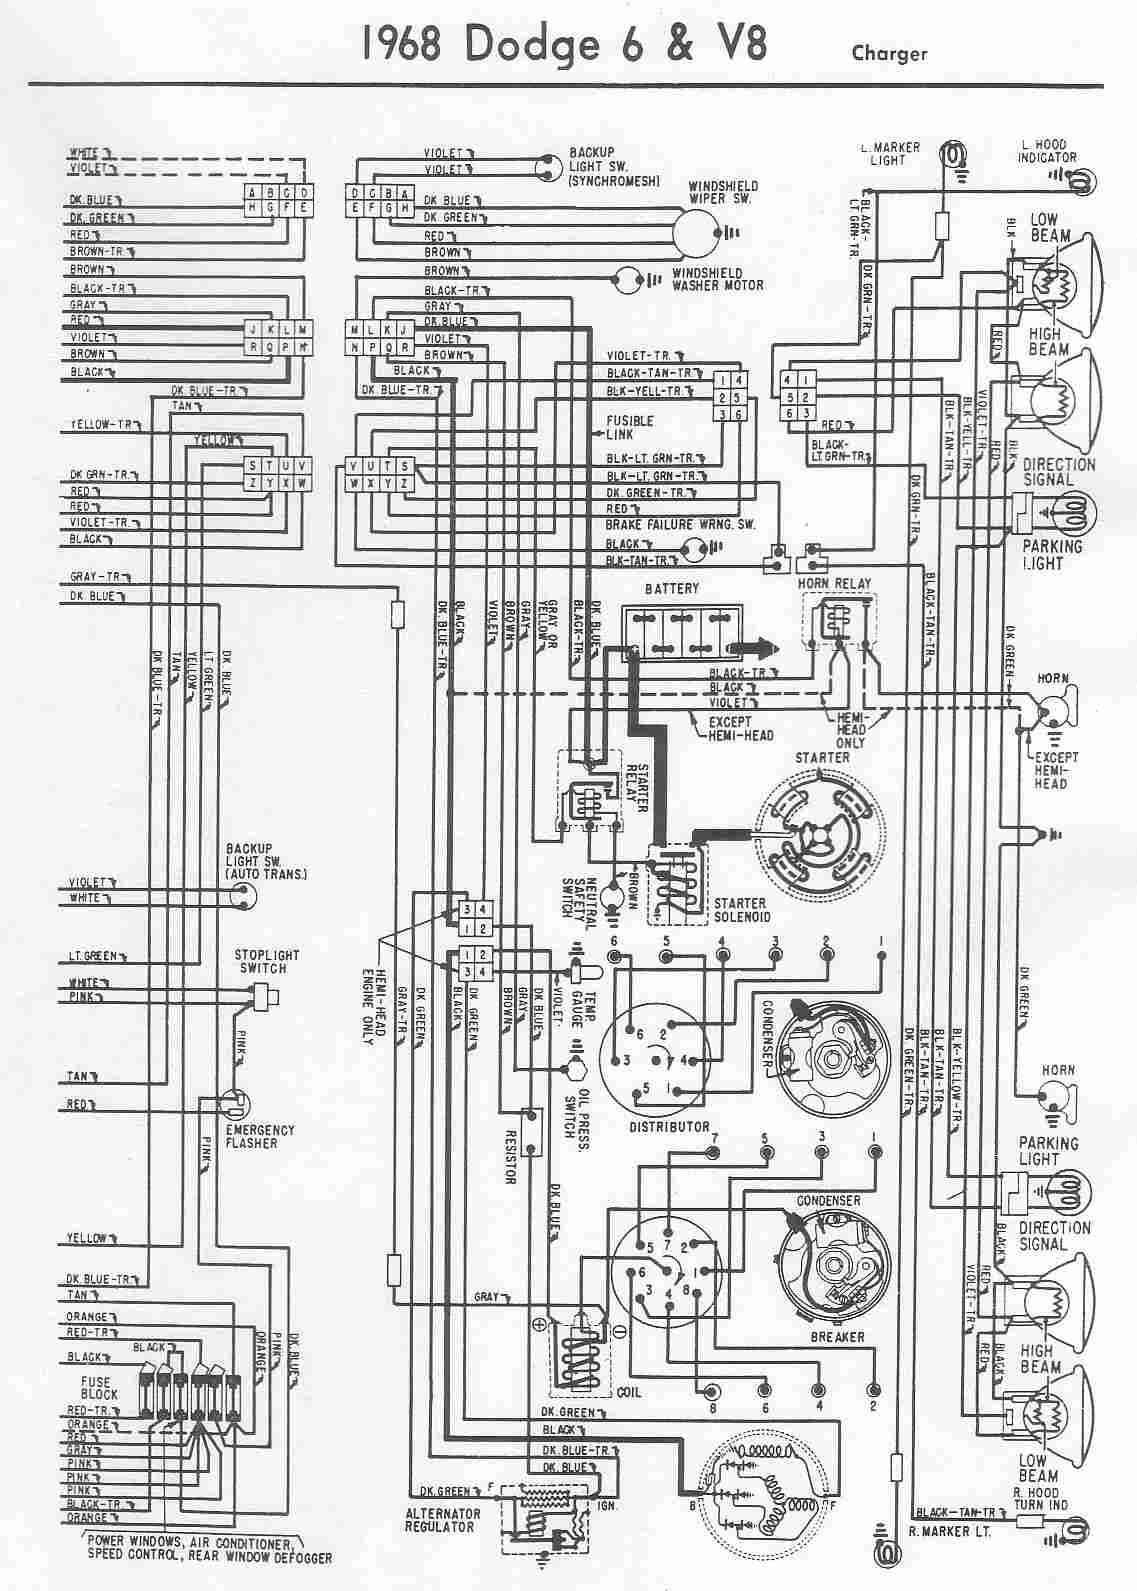 1988 Gmc K1500 Wiring Diagram Get Free Image About Dodge Car Manuals Diagrams Pdf Fault Codes Download